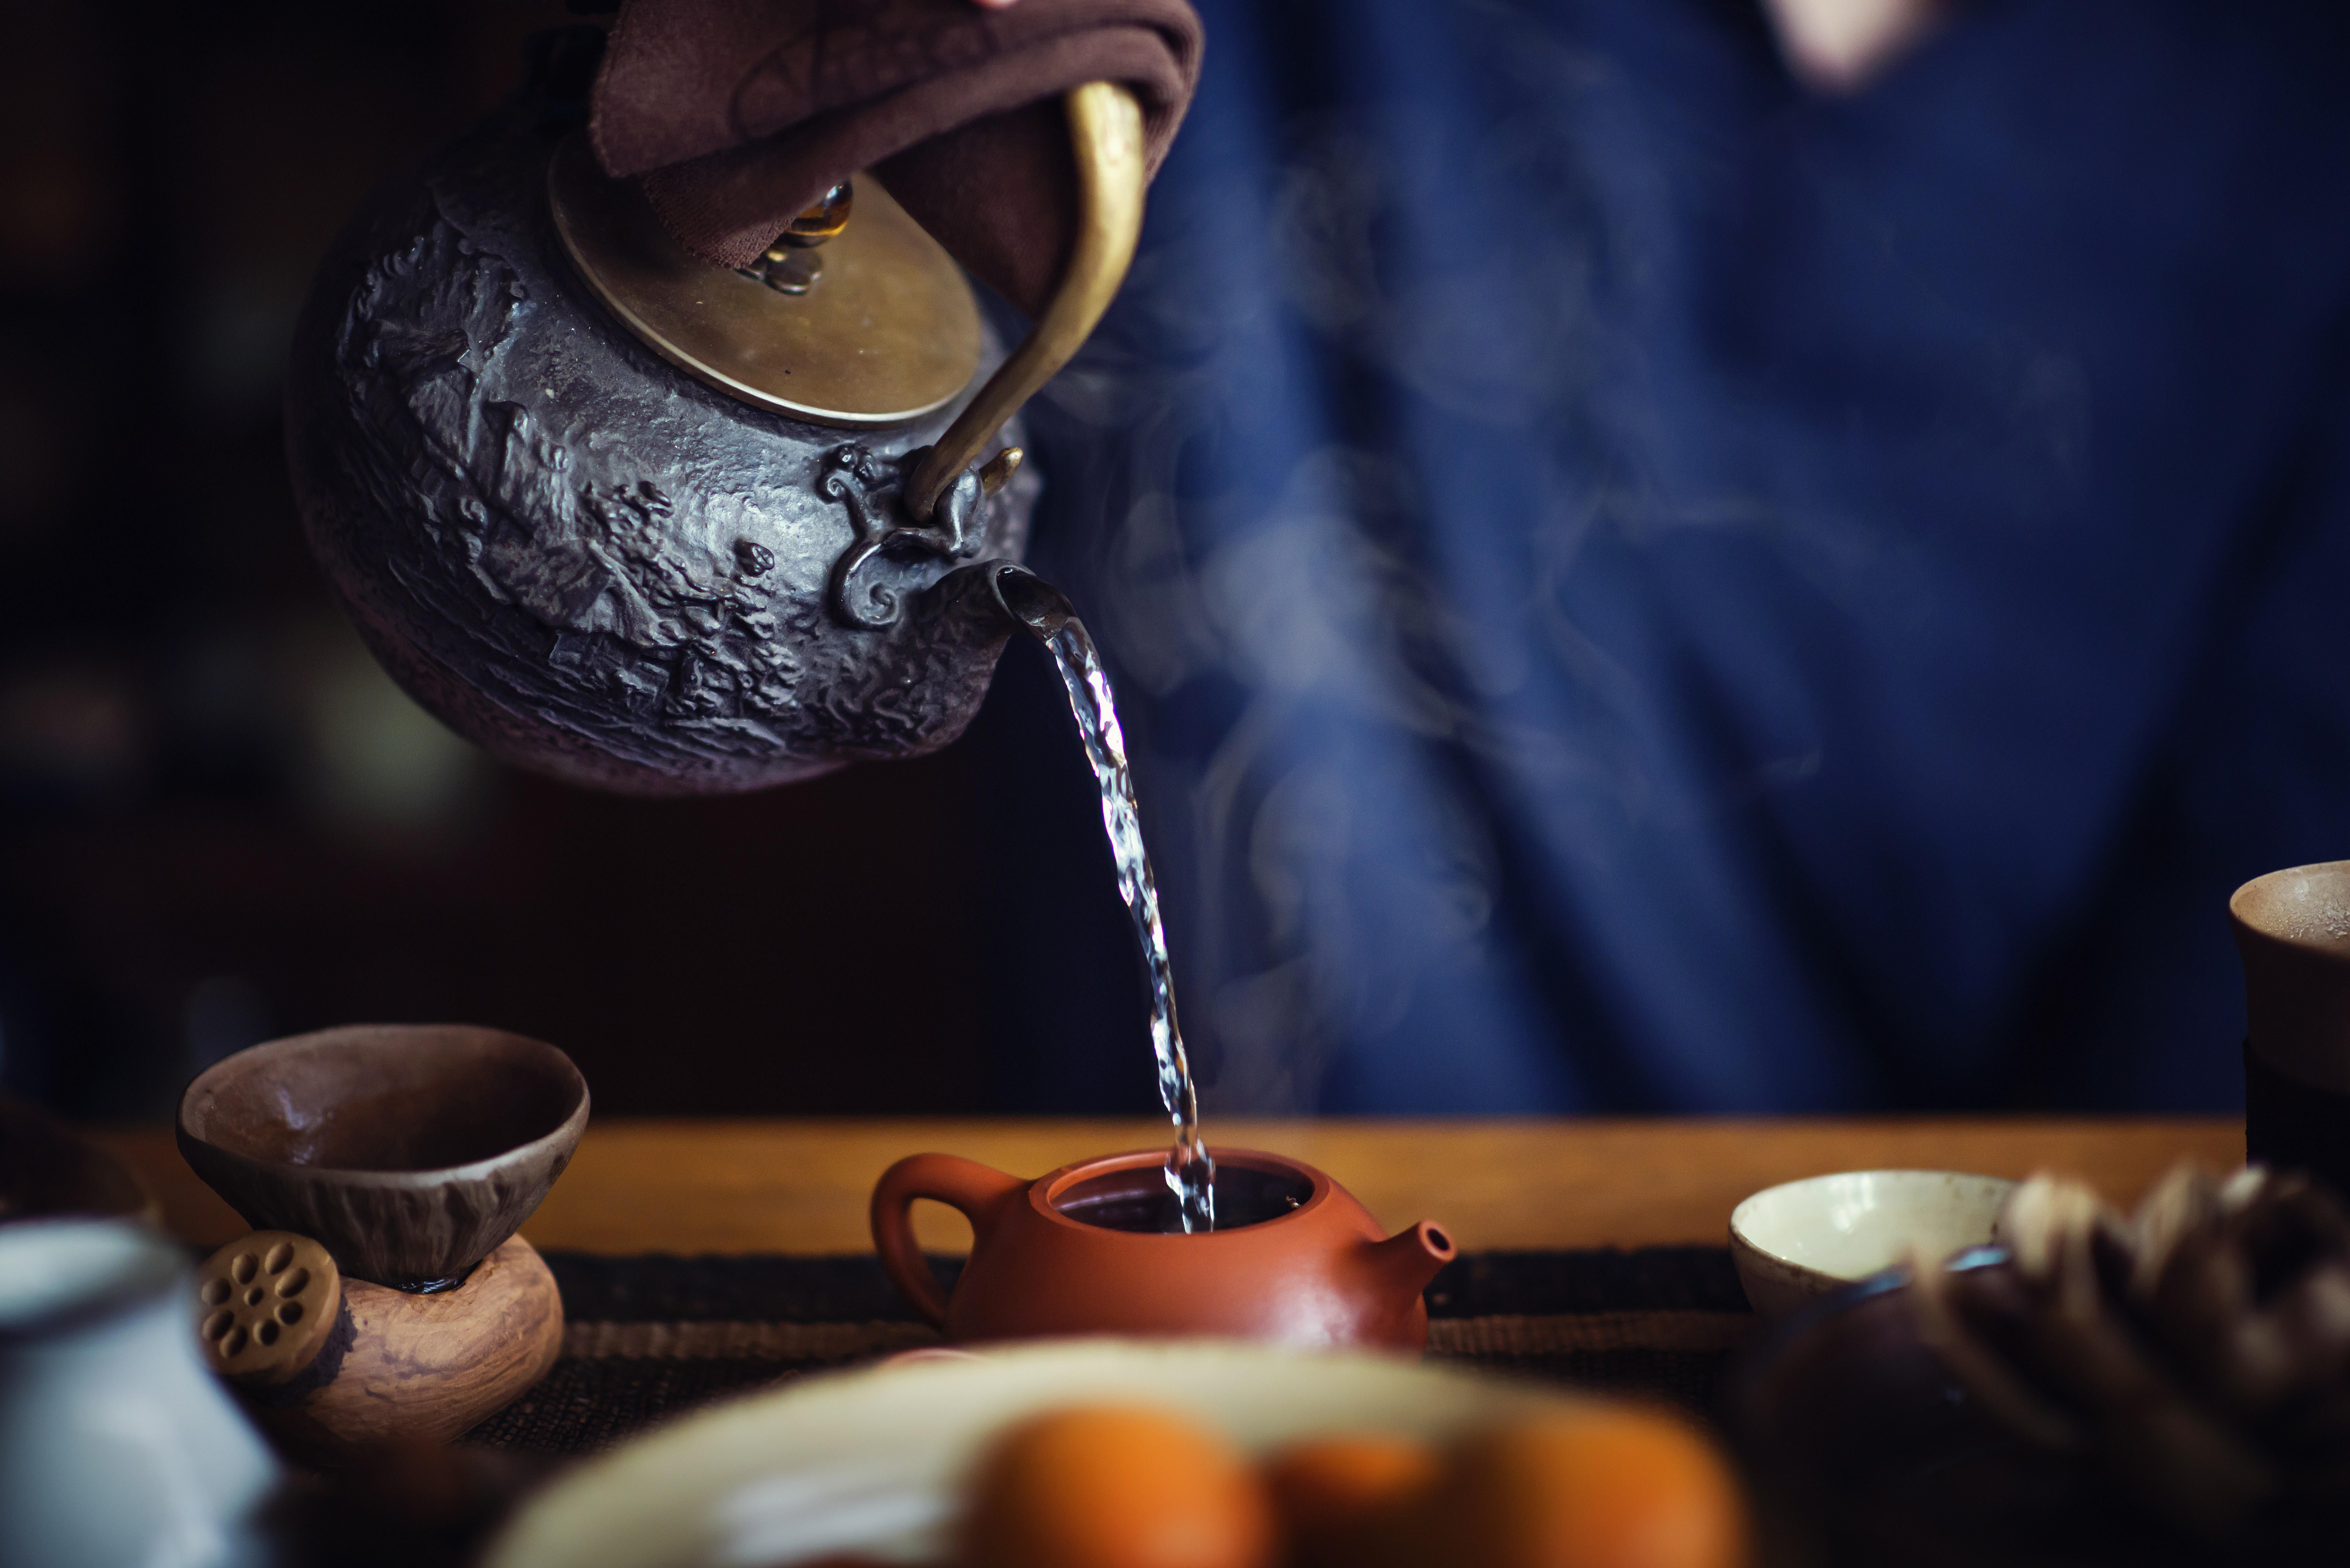 A Step-by-Step Guide to Brewing Chinese Tea